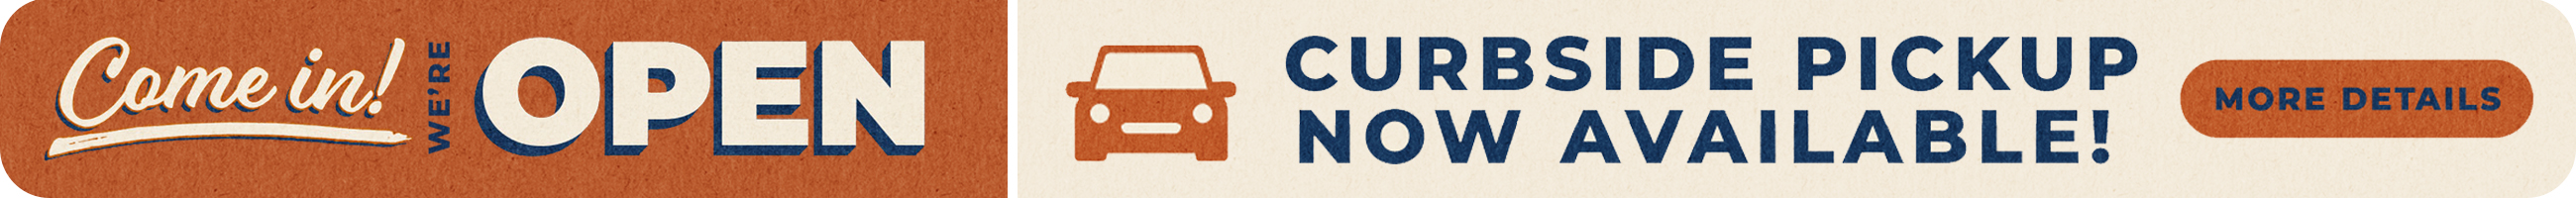 We're Open! Curbside is now Available